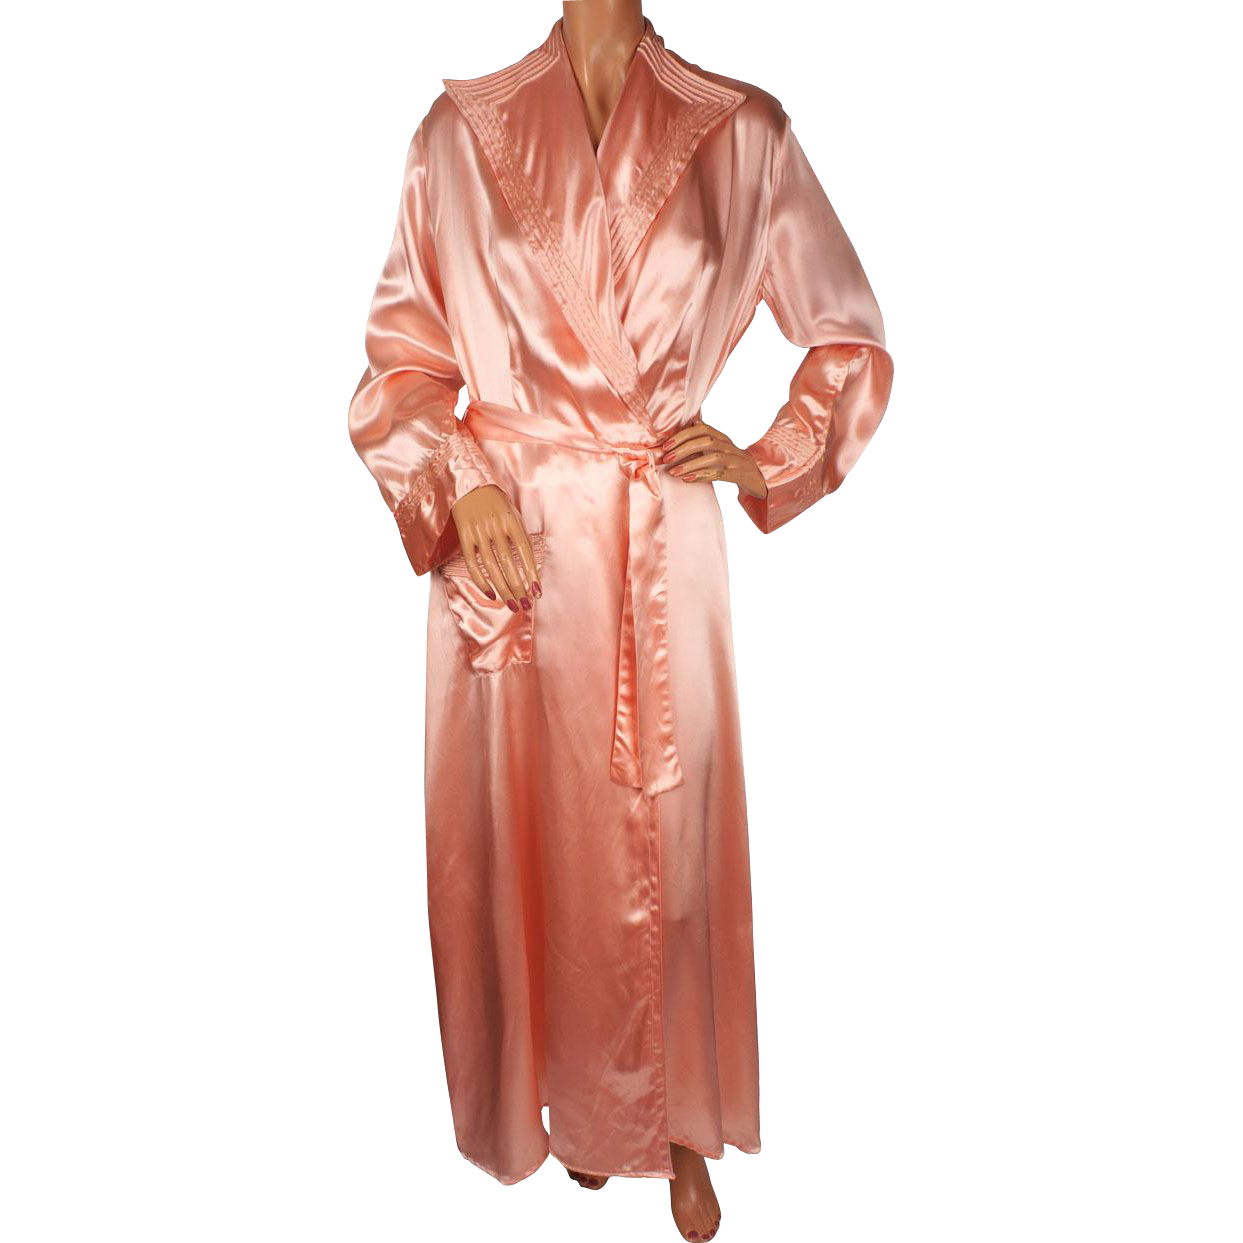 1940s Dressing Gown: Vintage 1940s Peignoir Pink Satin Dressing Gown